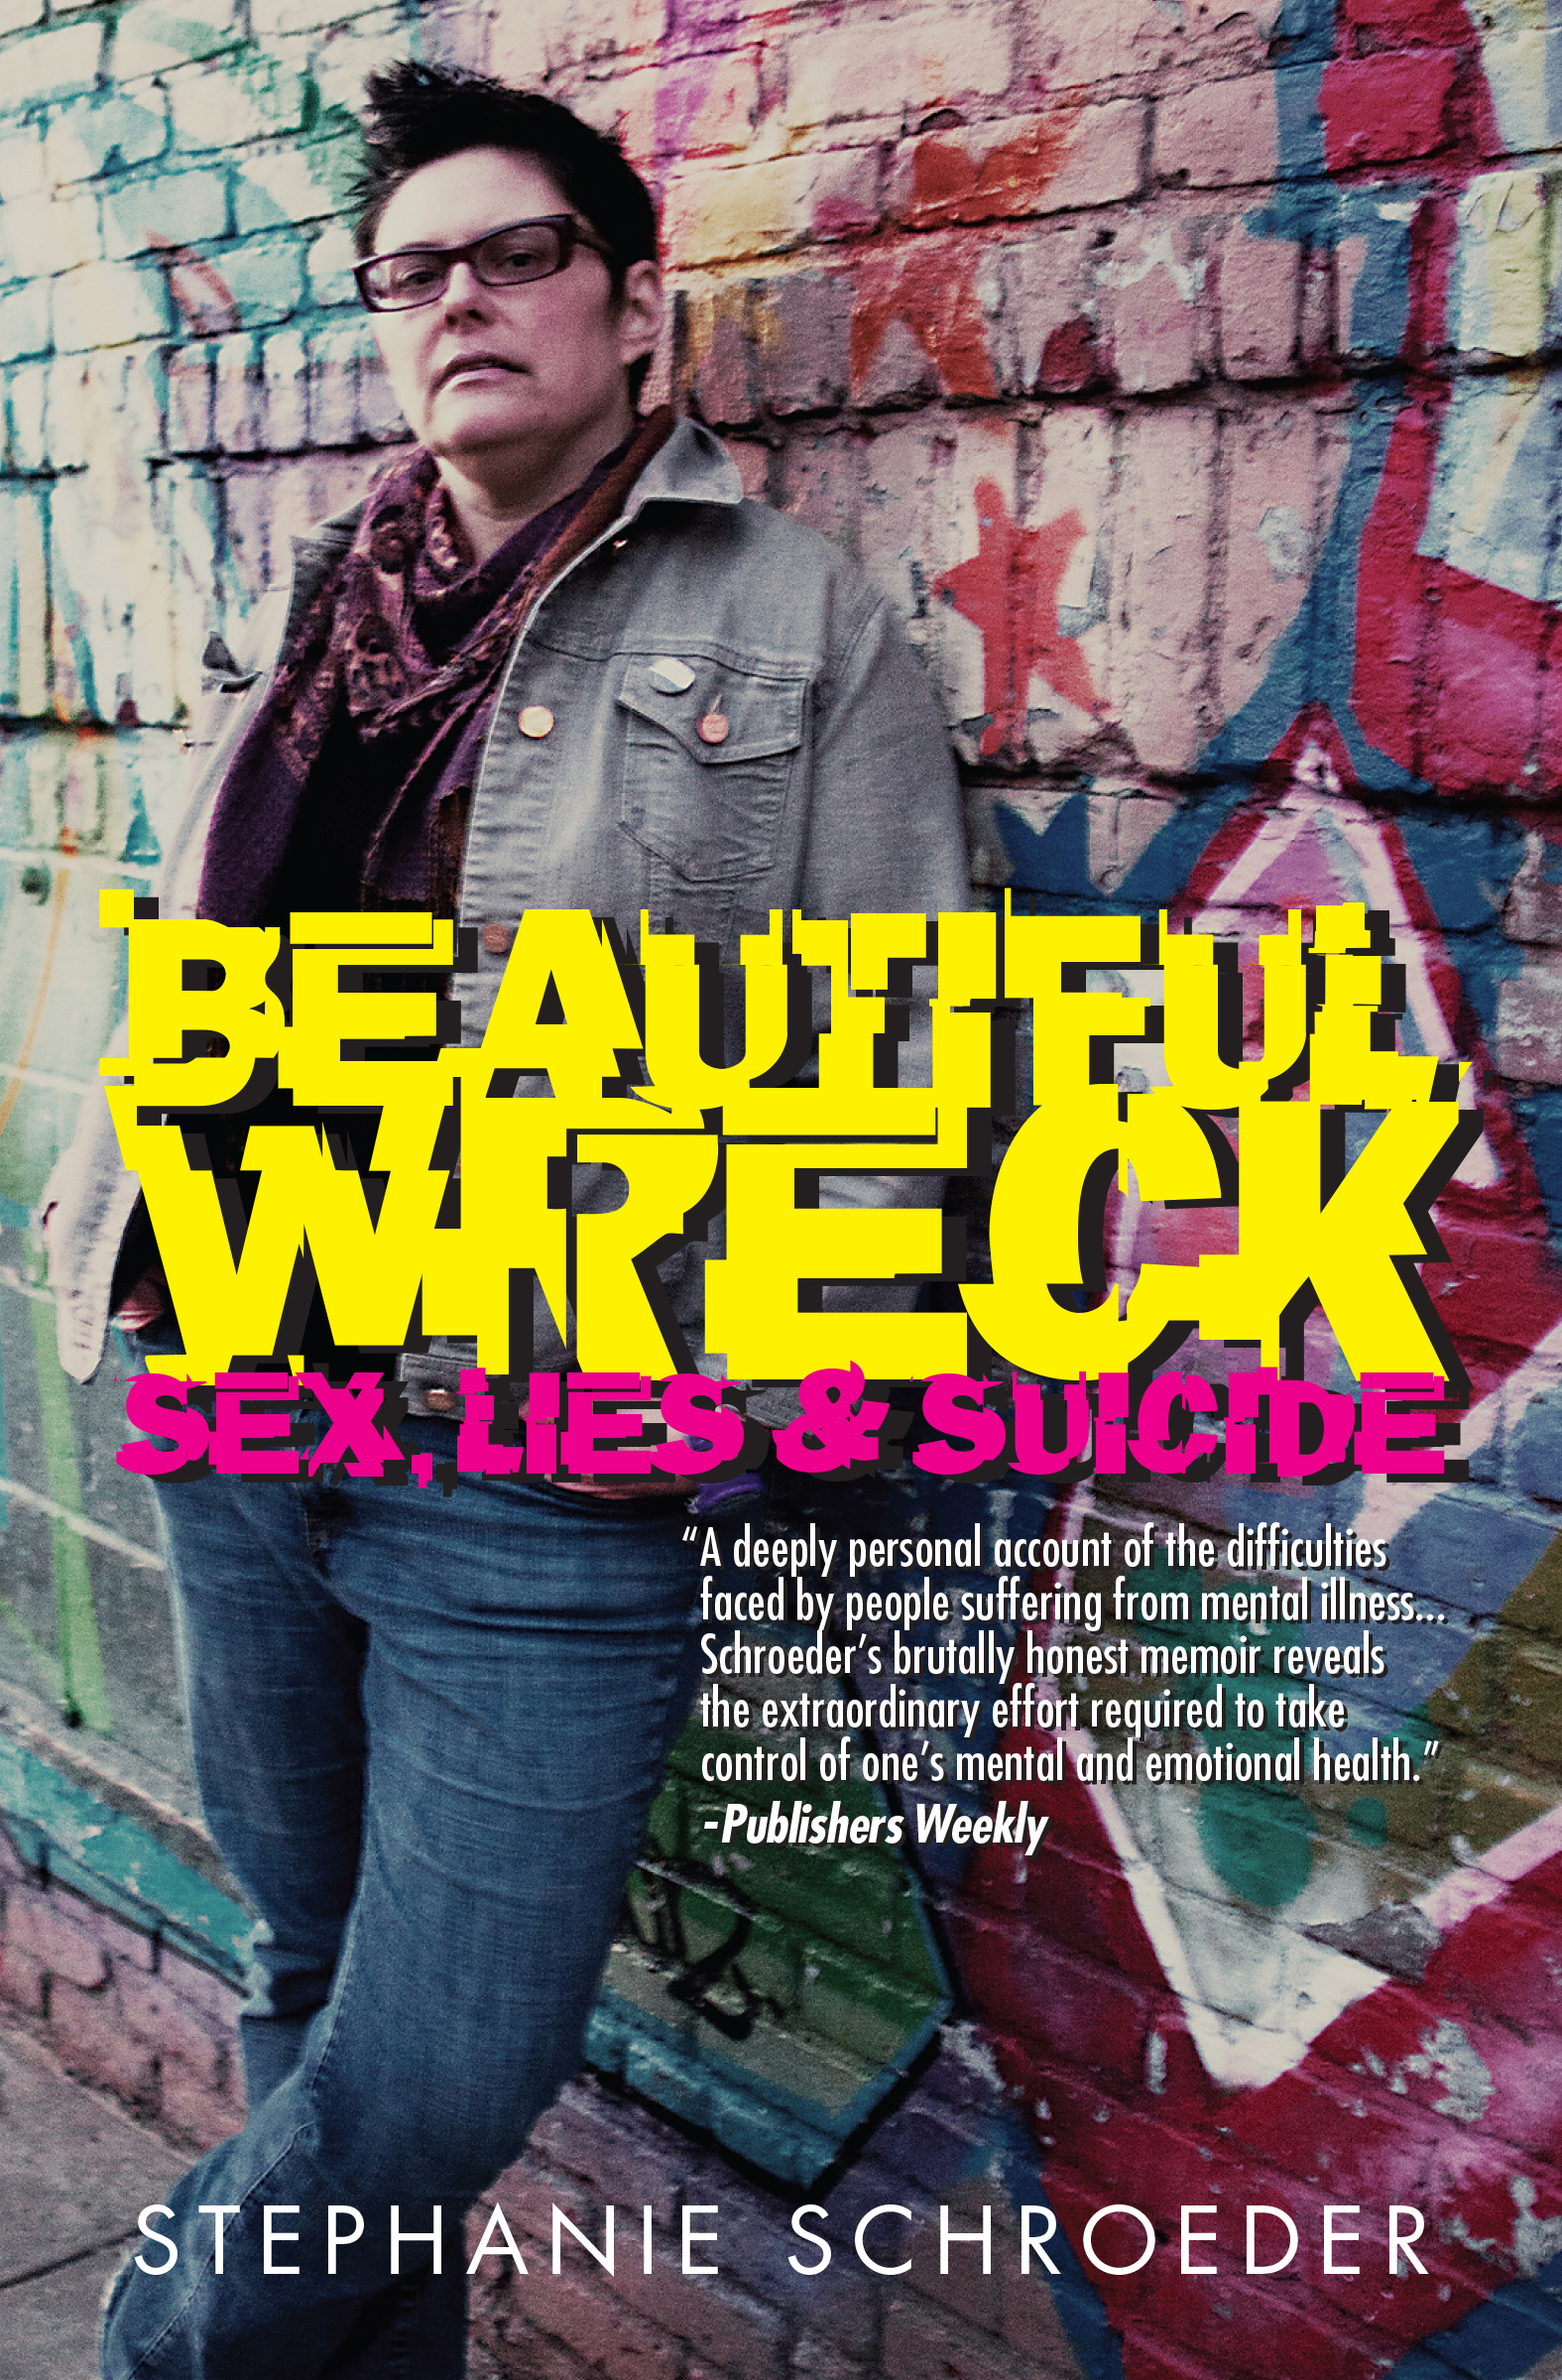 BOOK COVER- BEAUTIFUL WRECK: SEX, LIES, & SUICIDE